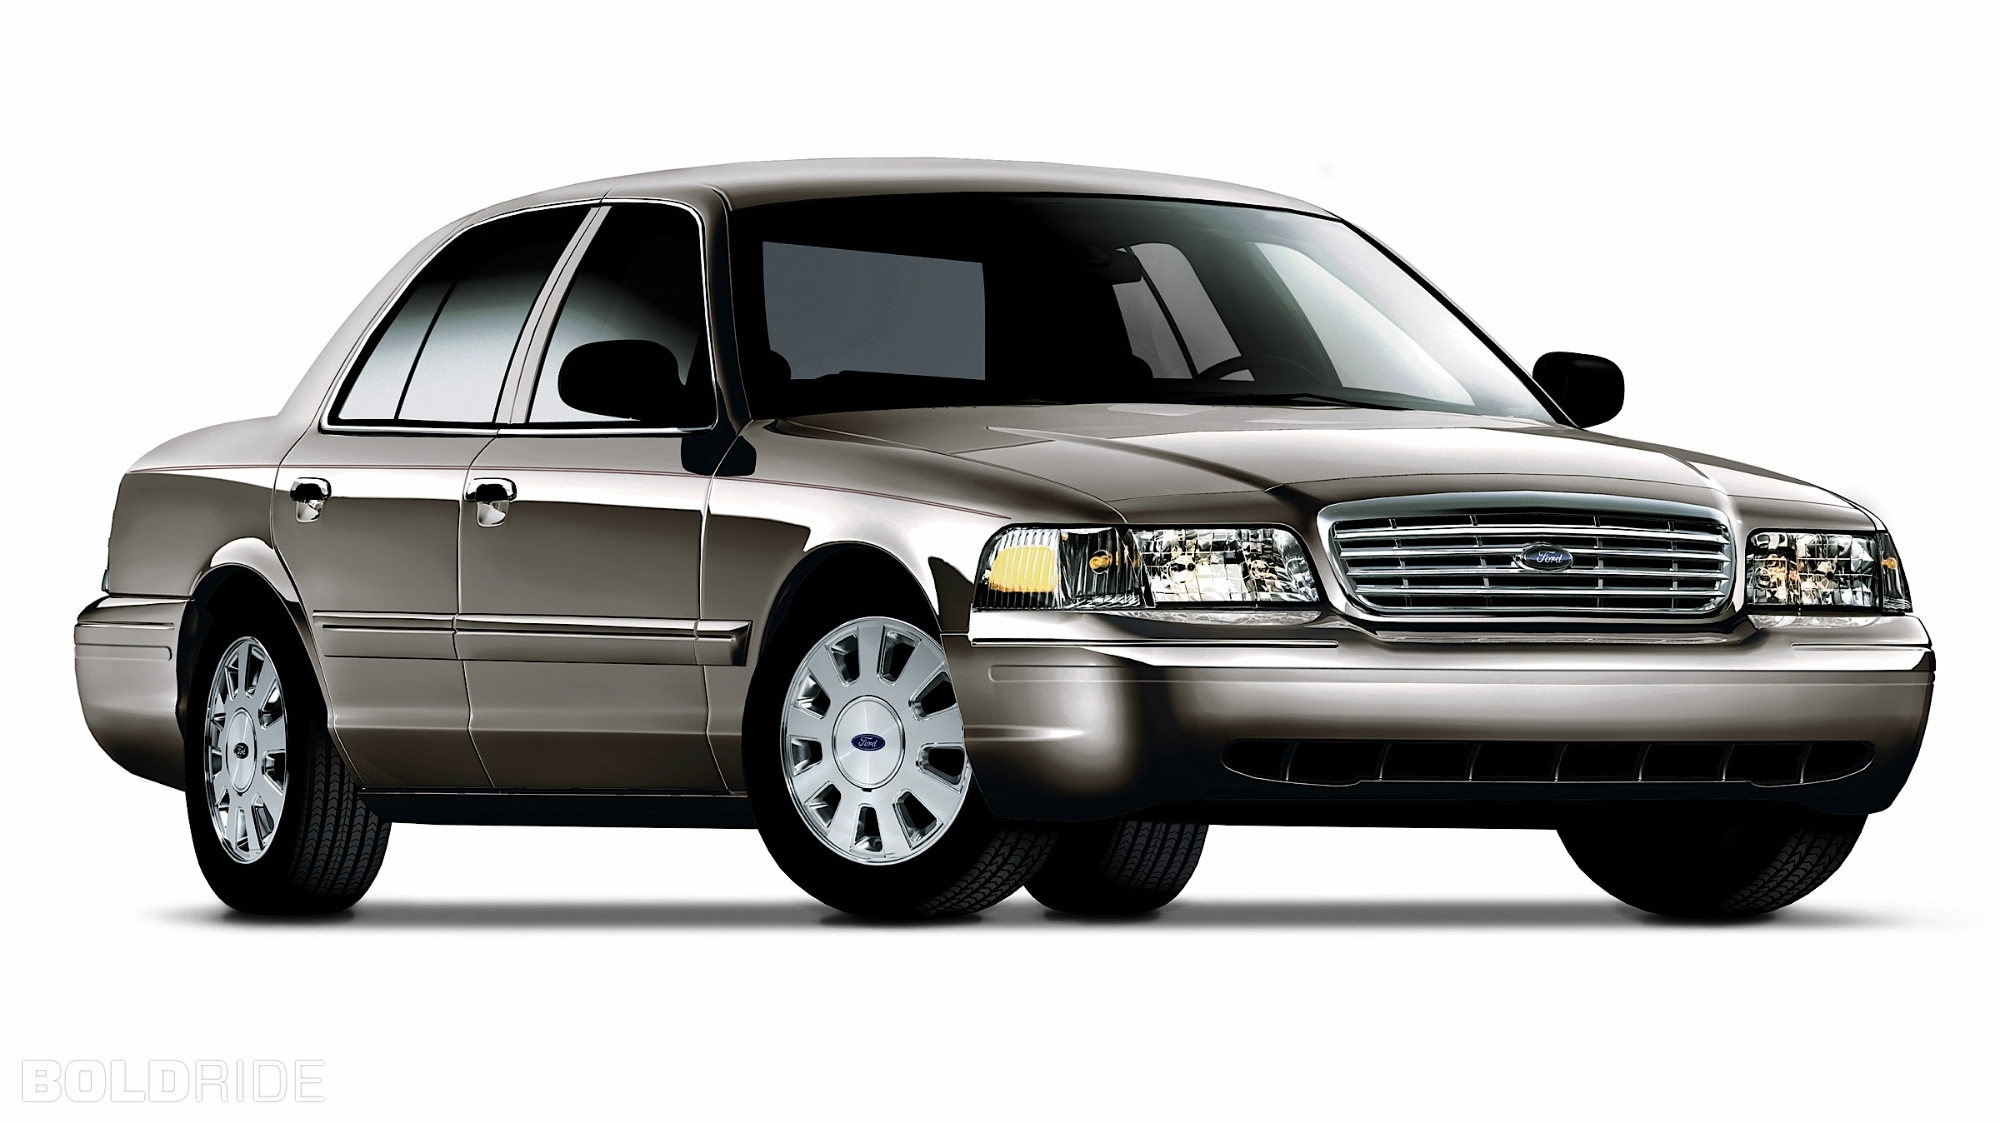 2010 Ford Crown Victoria #3